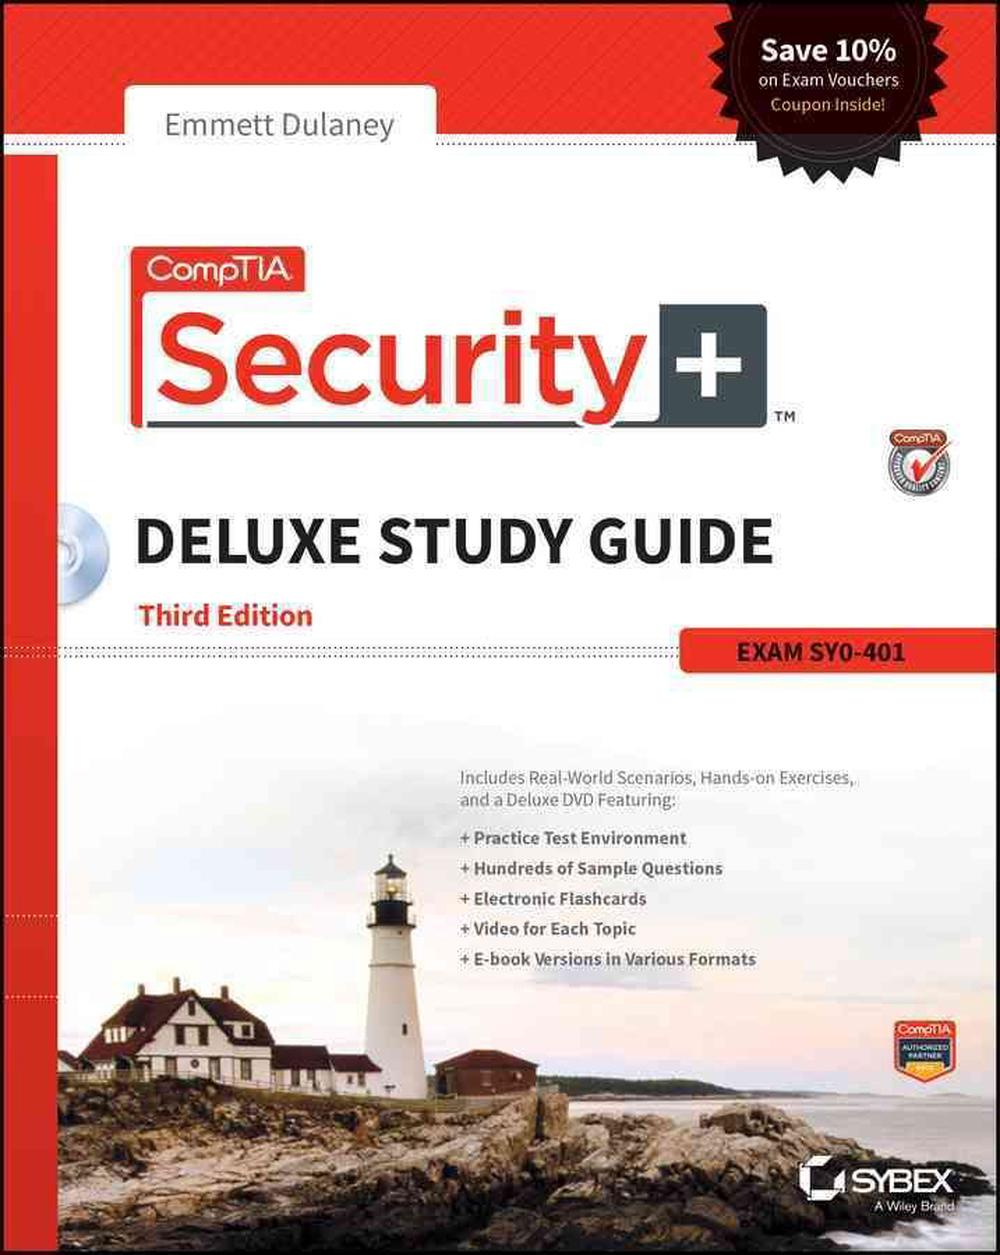 comptia security deluxe study guide sy0 401 with dvd by emmett rh ebay com comptia security+ study guide sy0-401 6th edition pdf comptia security+ study guide sy0-401 pdf